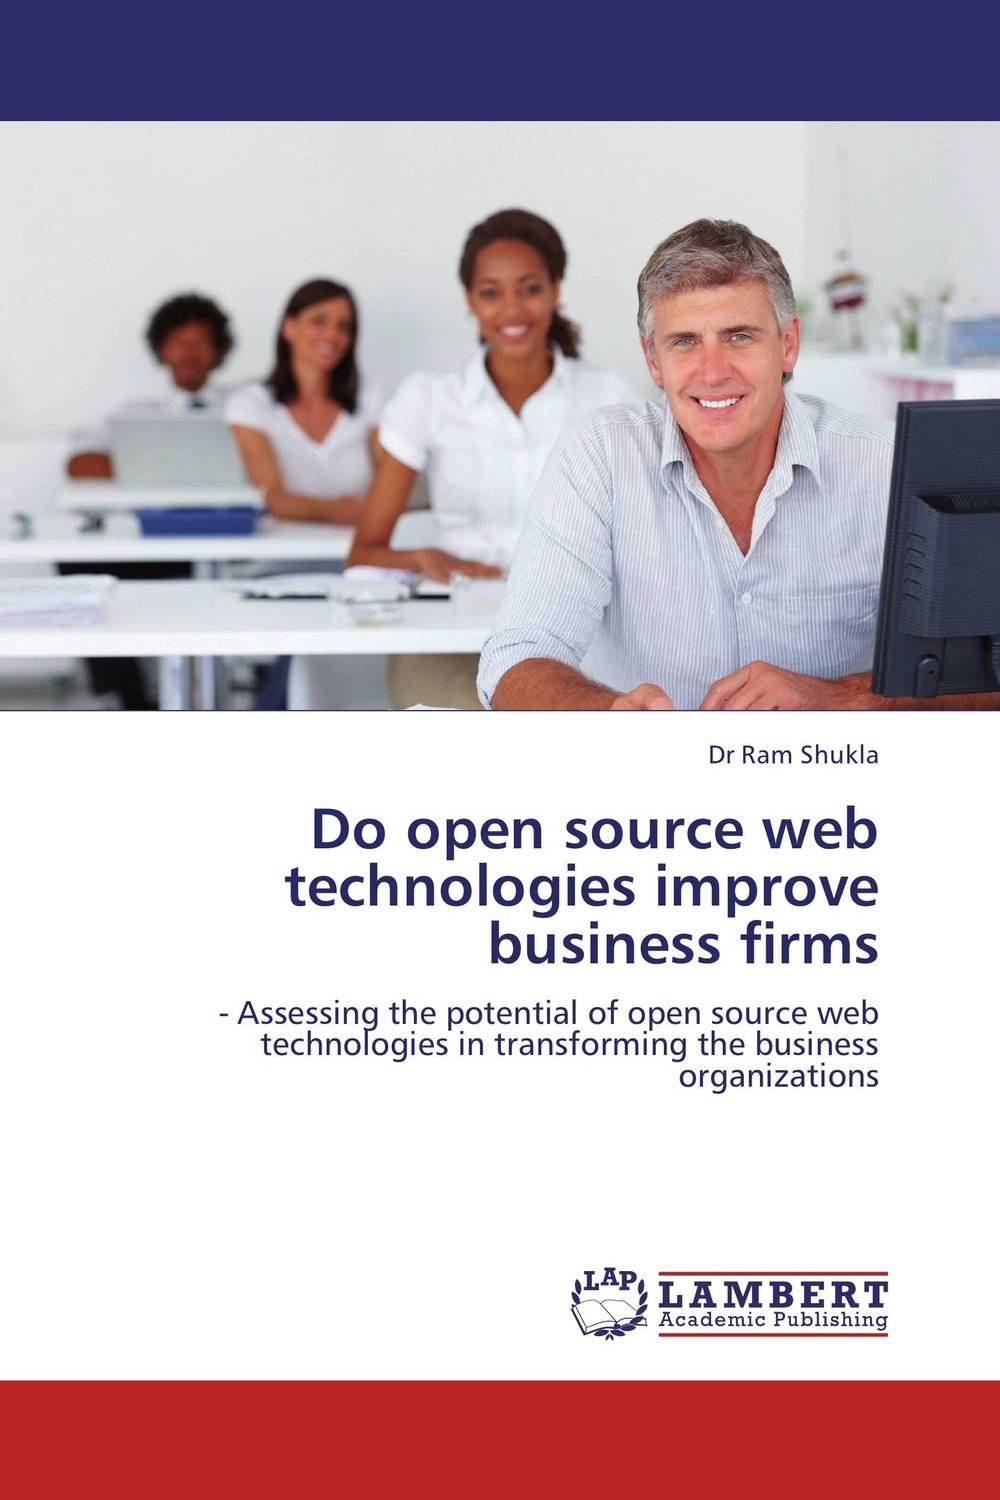 Do open source web technologies improve business firms overview of web based business